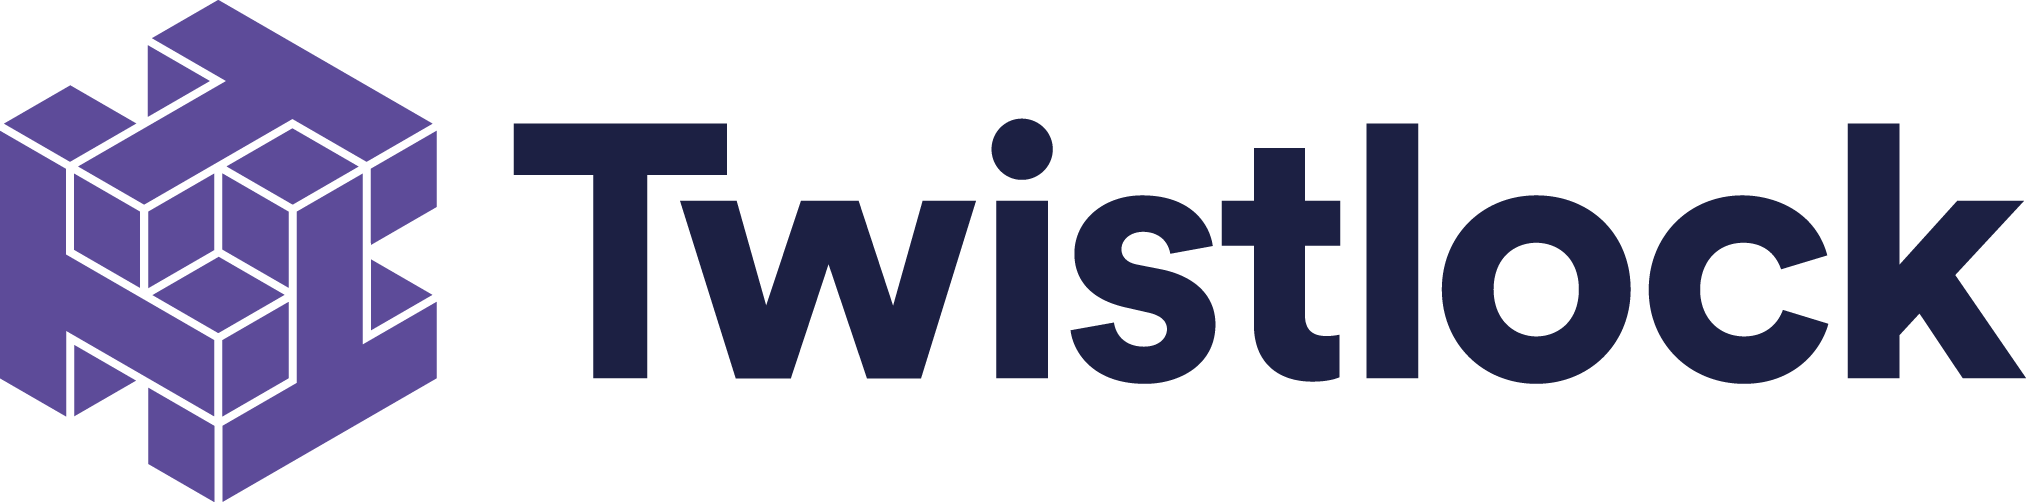 Logo Twistlock